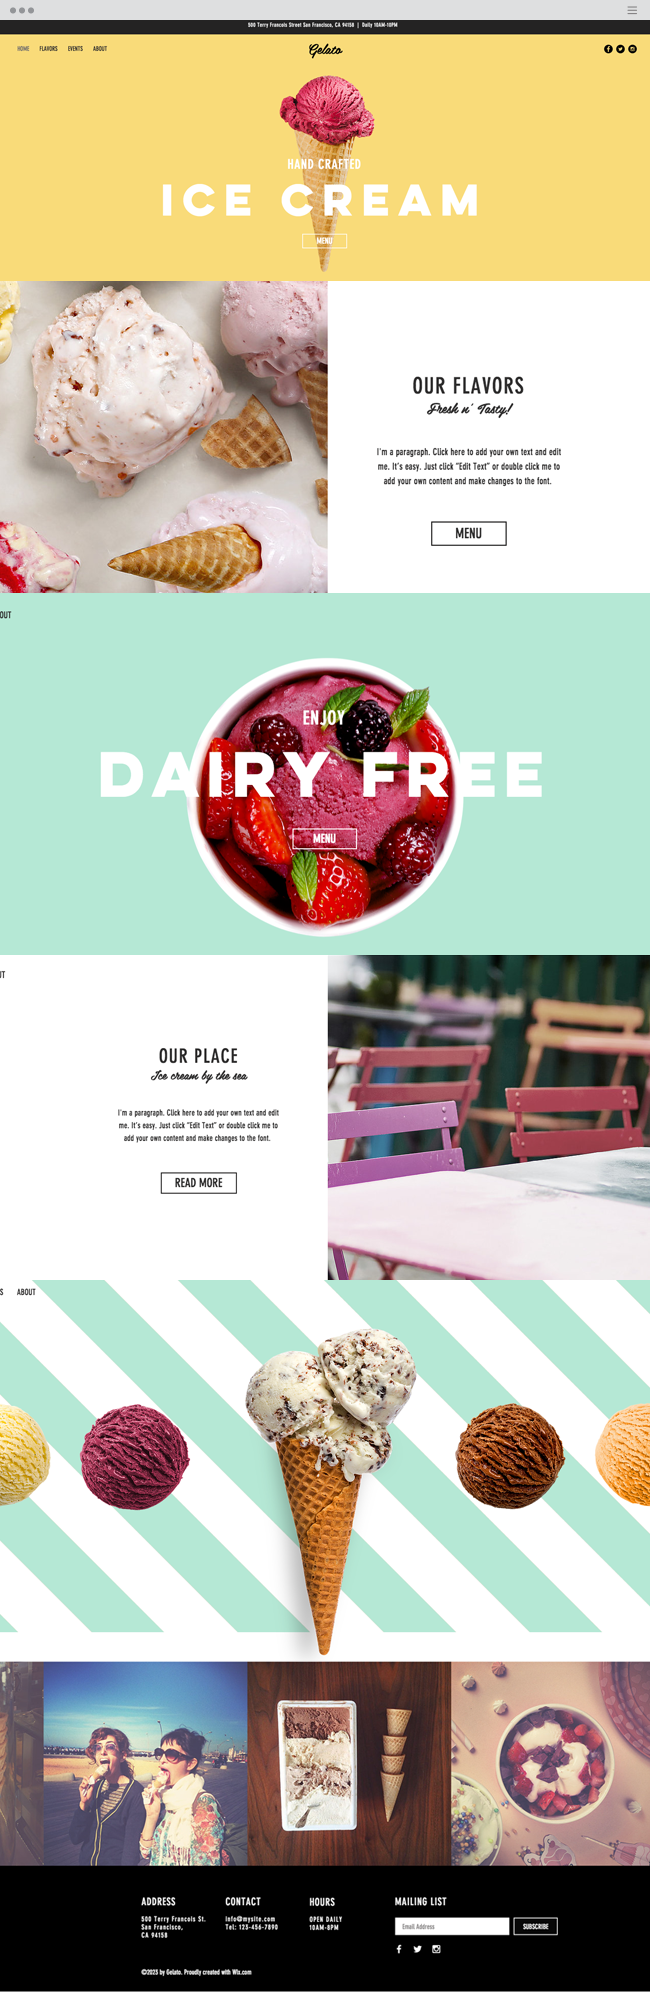 Ice Cream Parlor Website Template